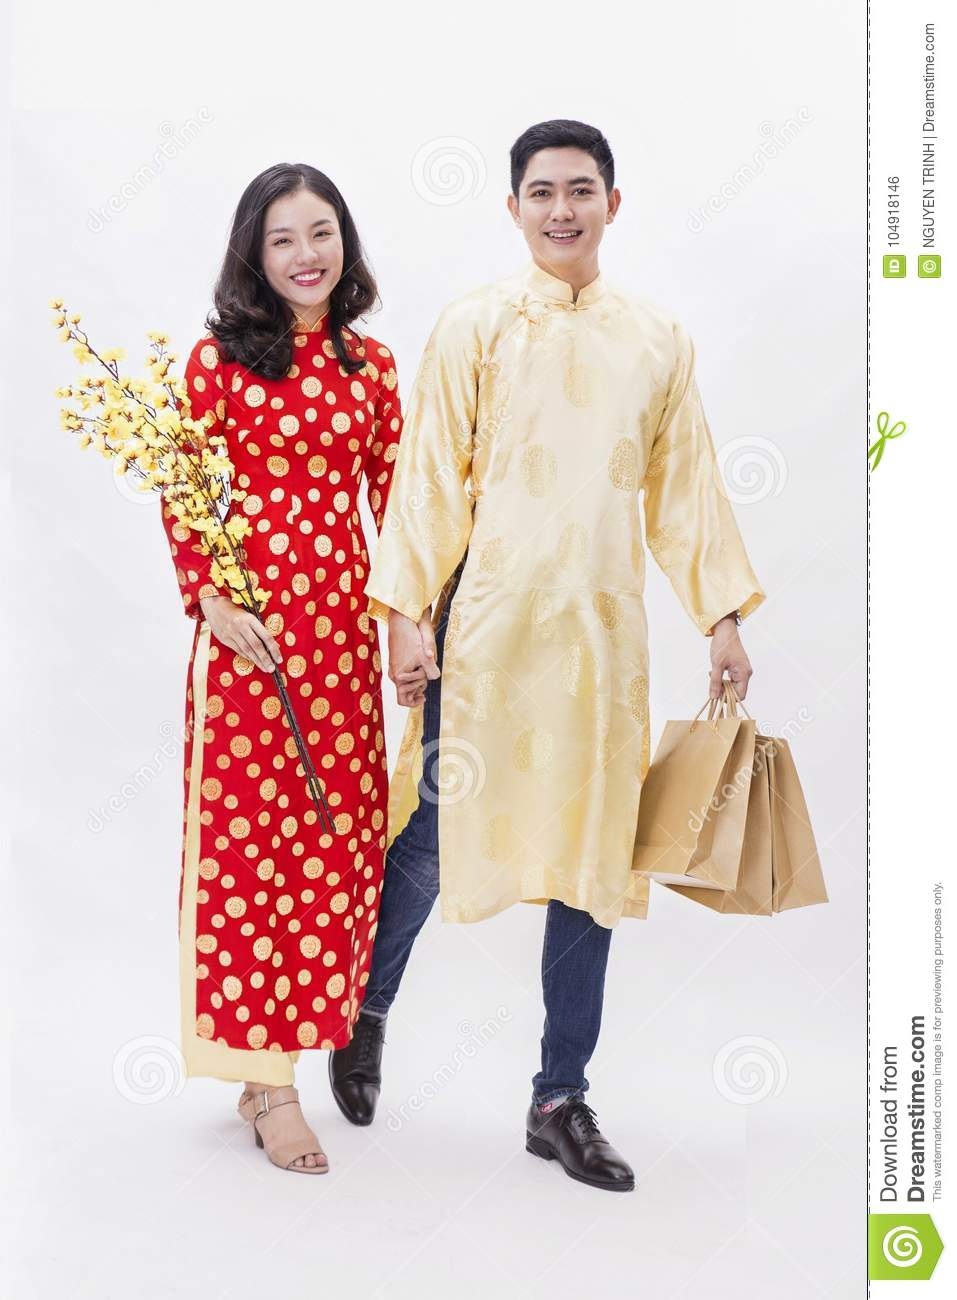 e44546fda Vietnamese asian girl wearing traditional dress for lunar tet new year and  holding a phone